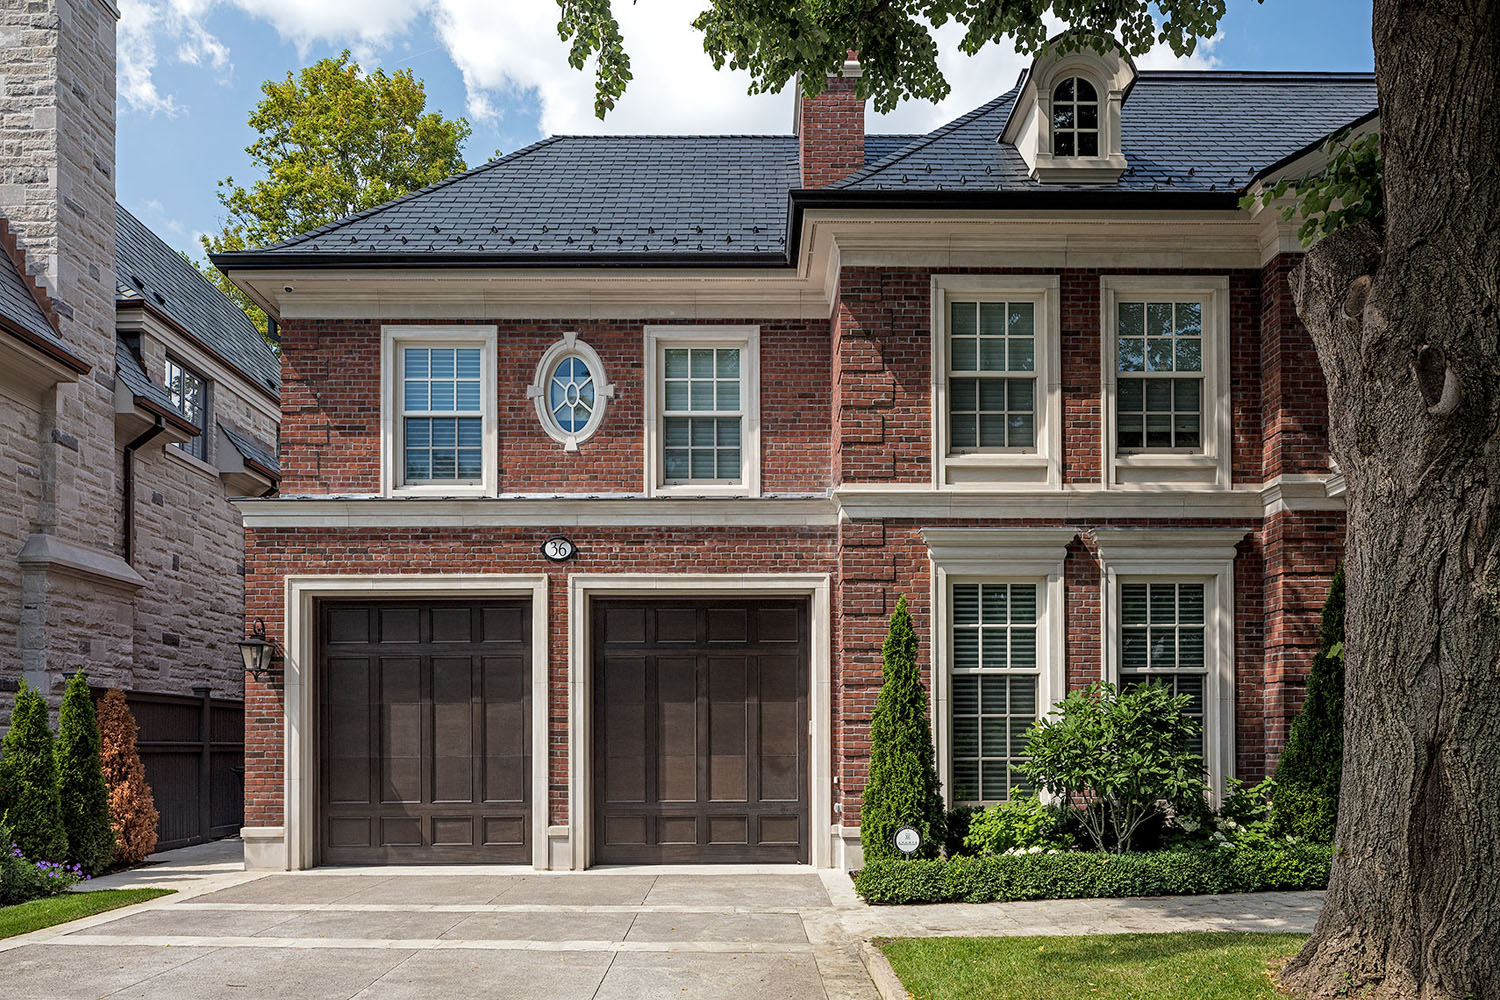 Luxury Two-Door Garage House